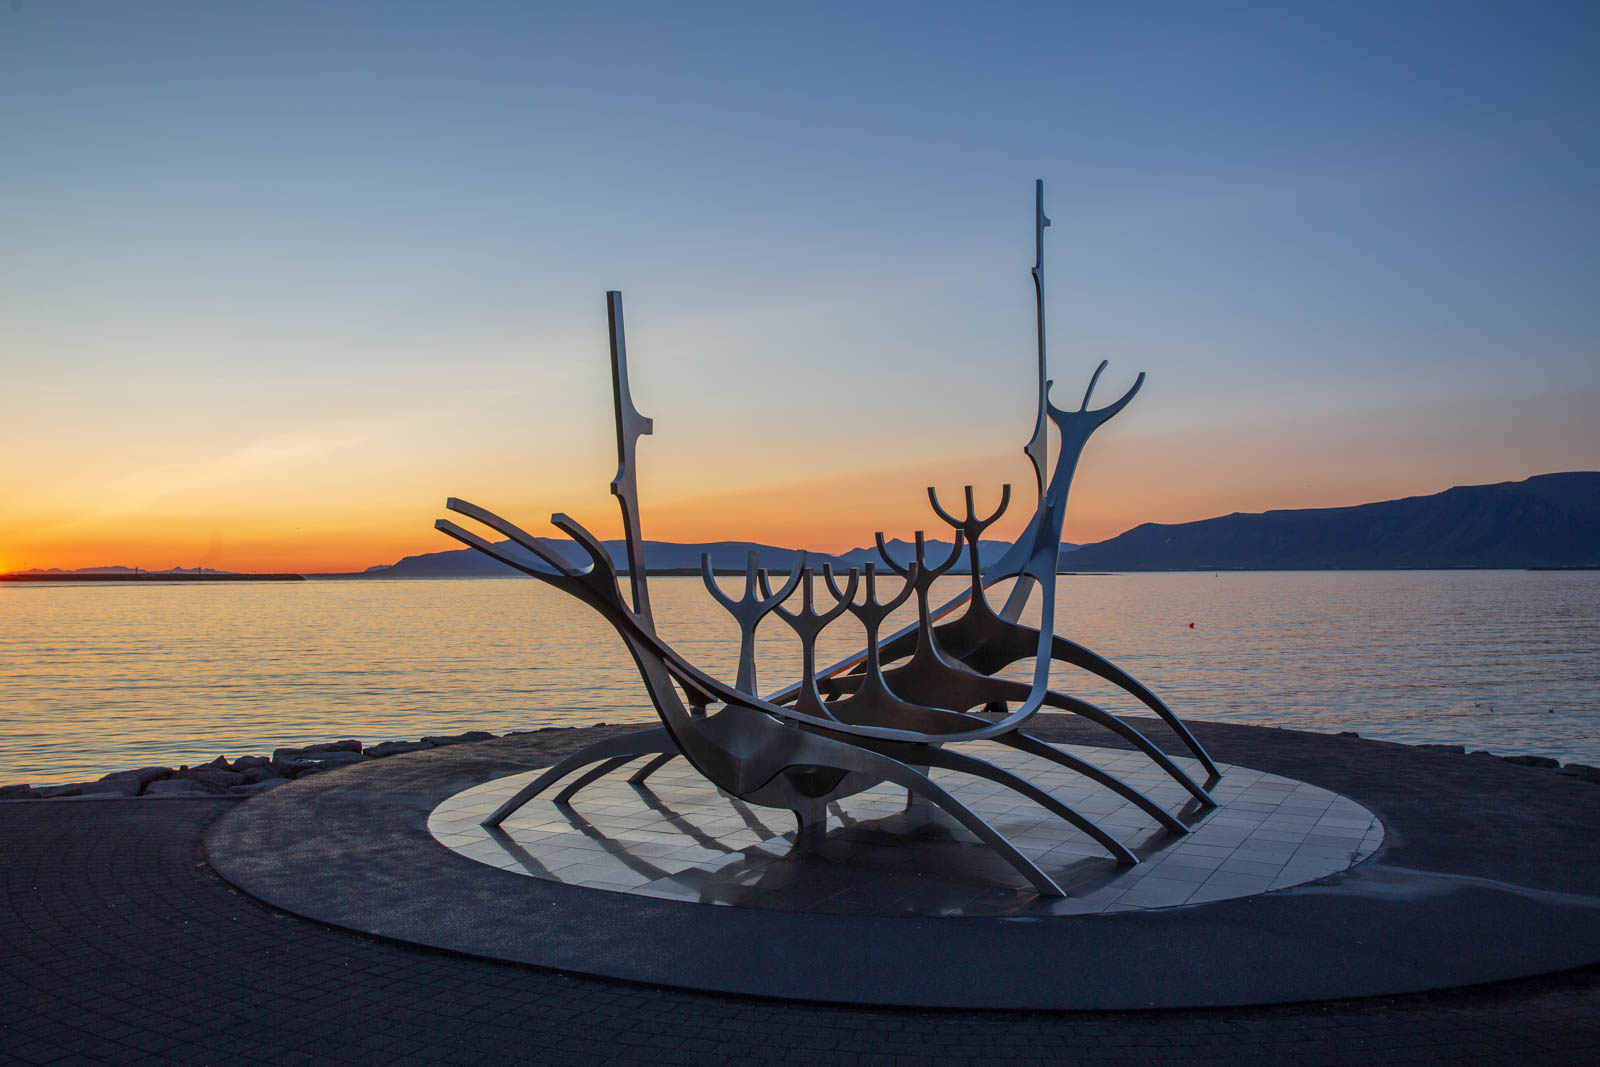 Photo: Sun Voyager